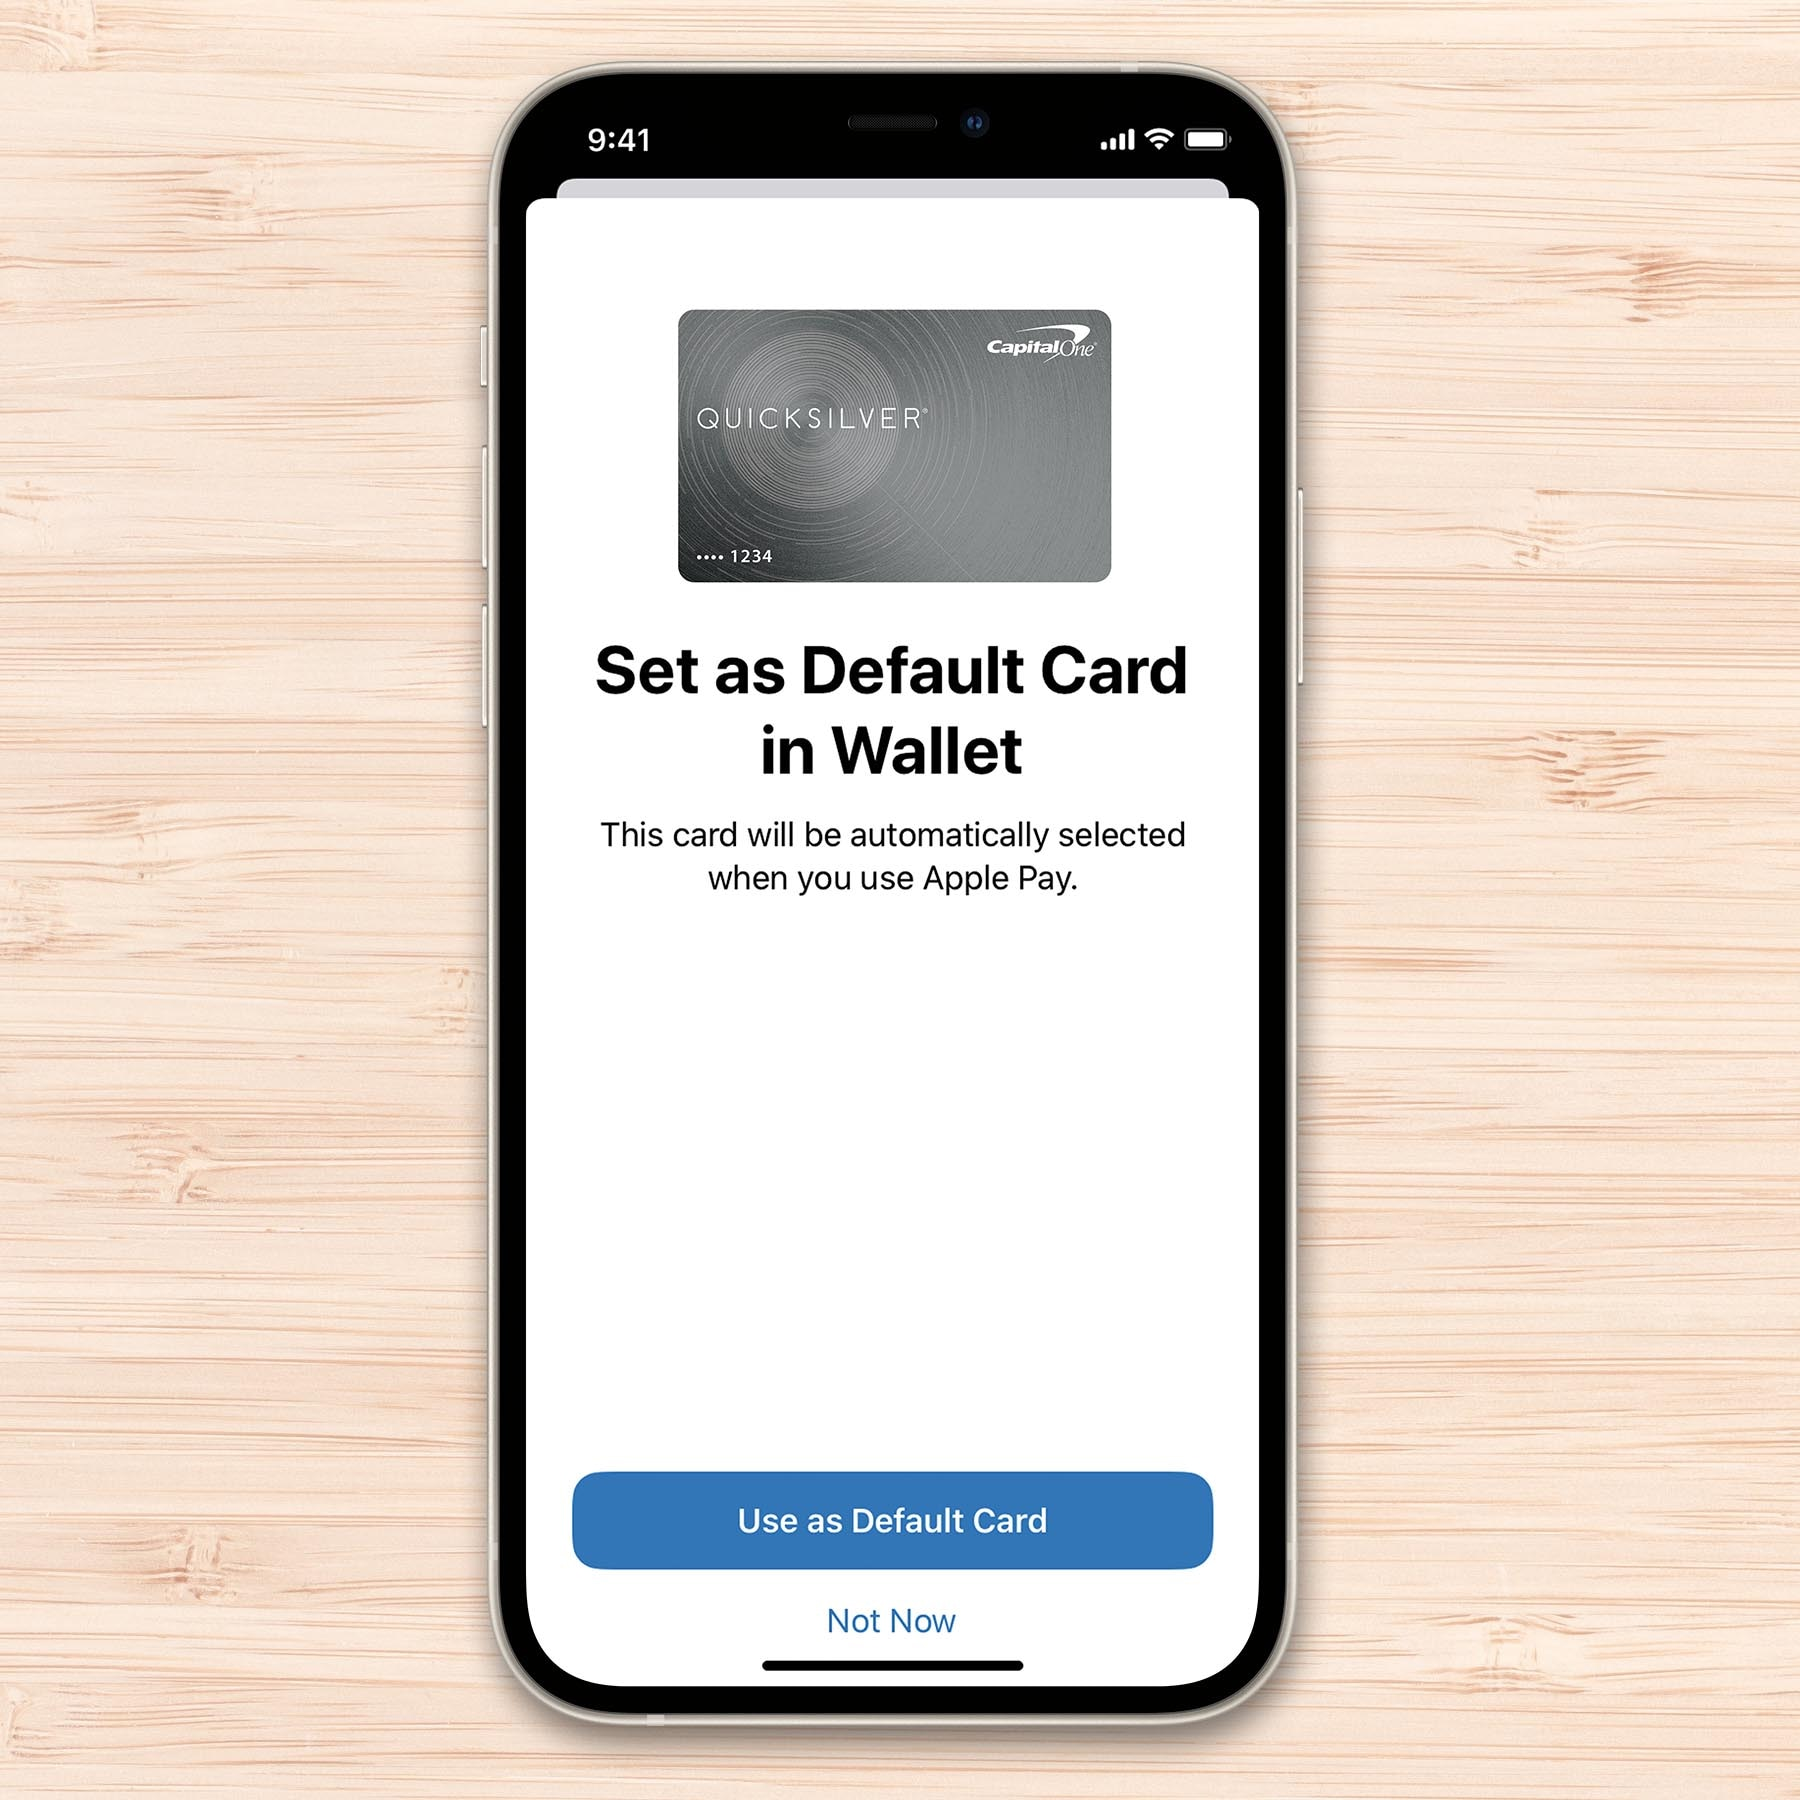 Setting up Apple Pay on an iPhone